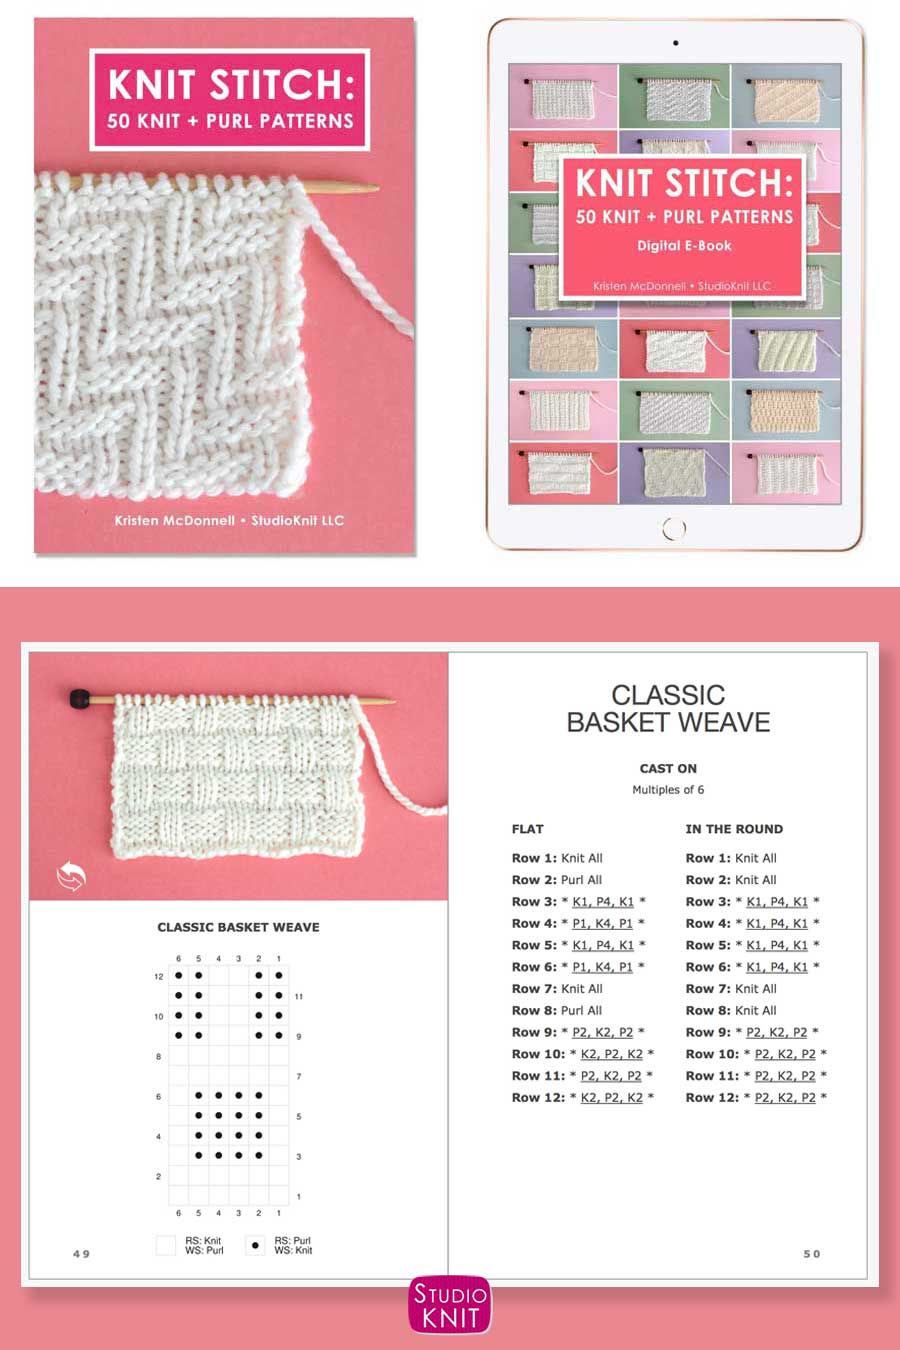 Knit Stitch Pattern Book with Classic Basket Weave Stitch Pattern by Studio Knit